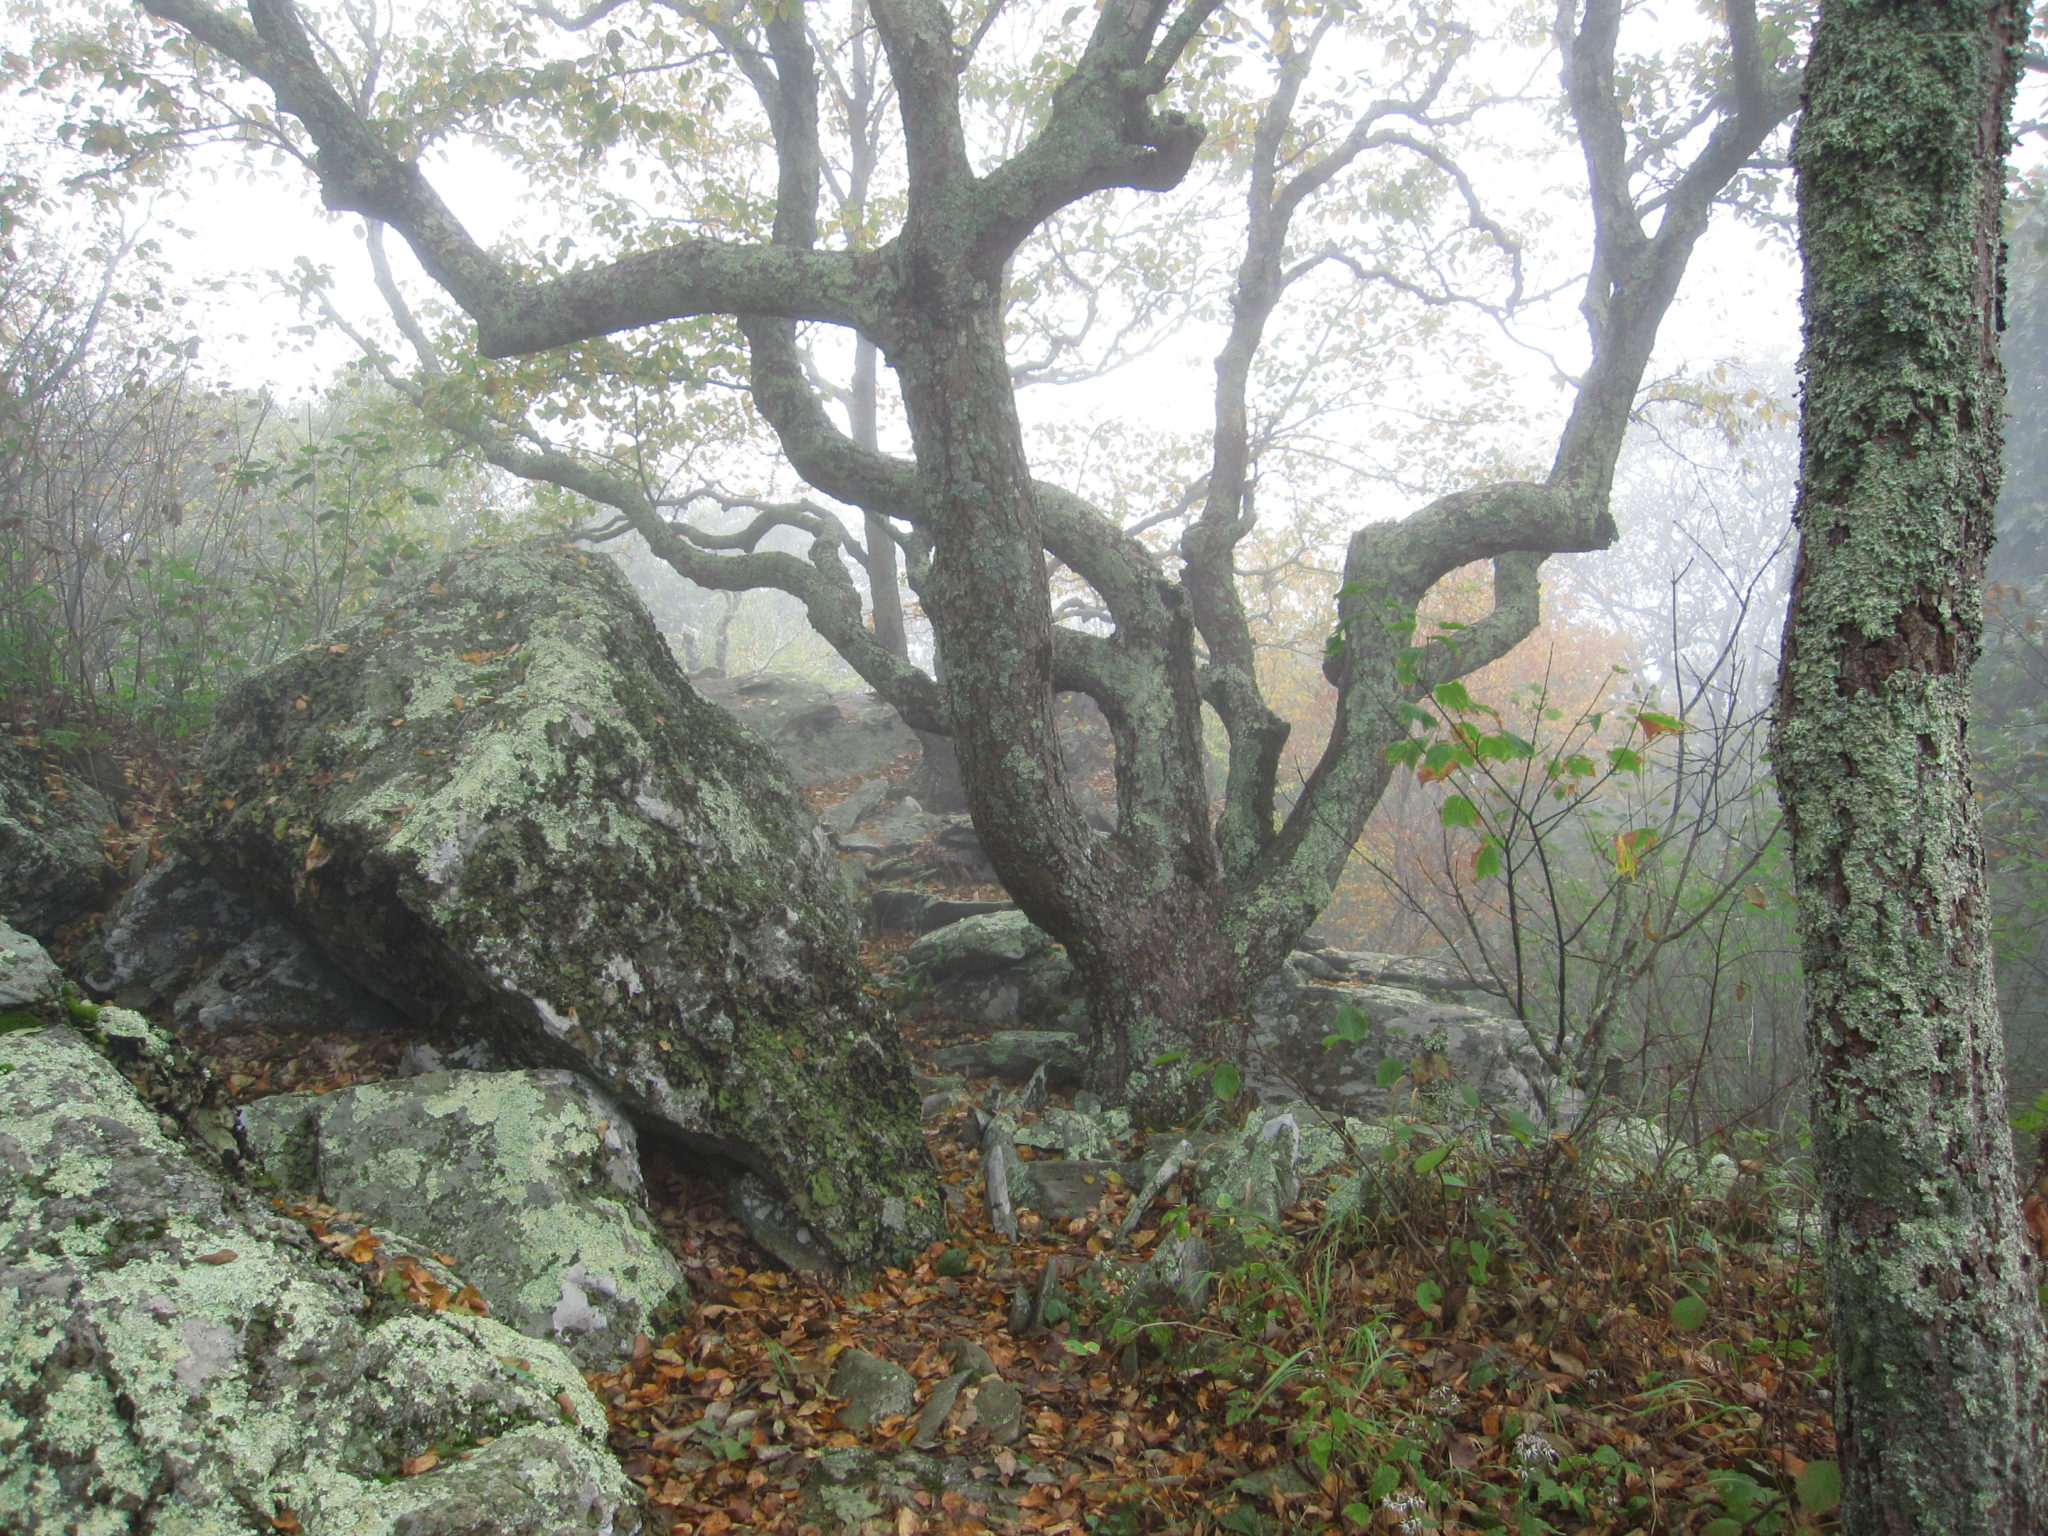 Bearfence Mountain Gnarly Tree in Fog